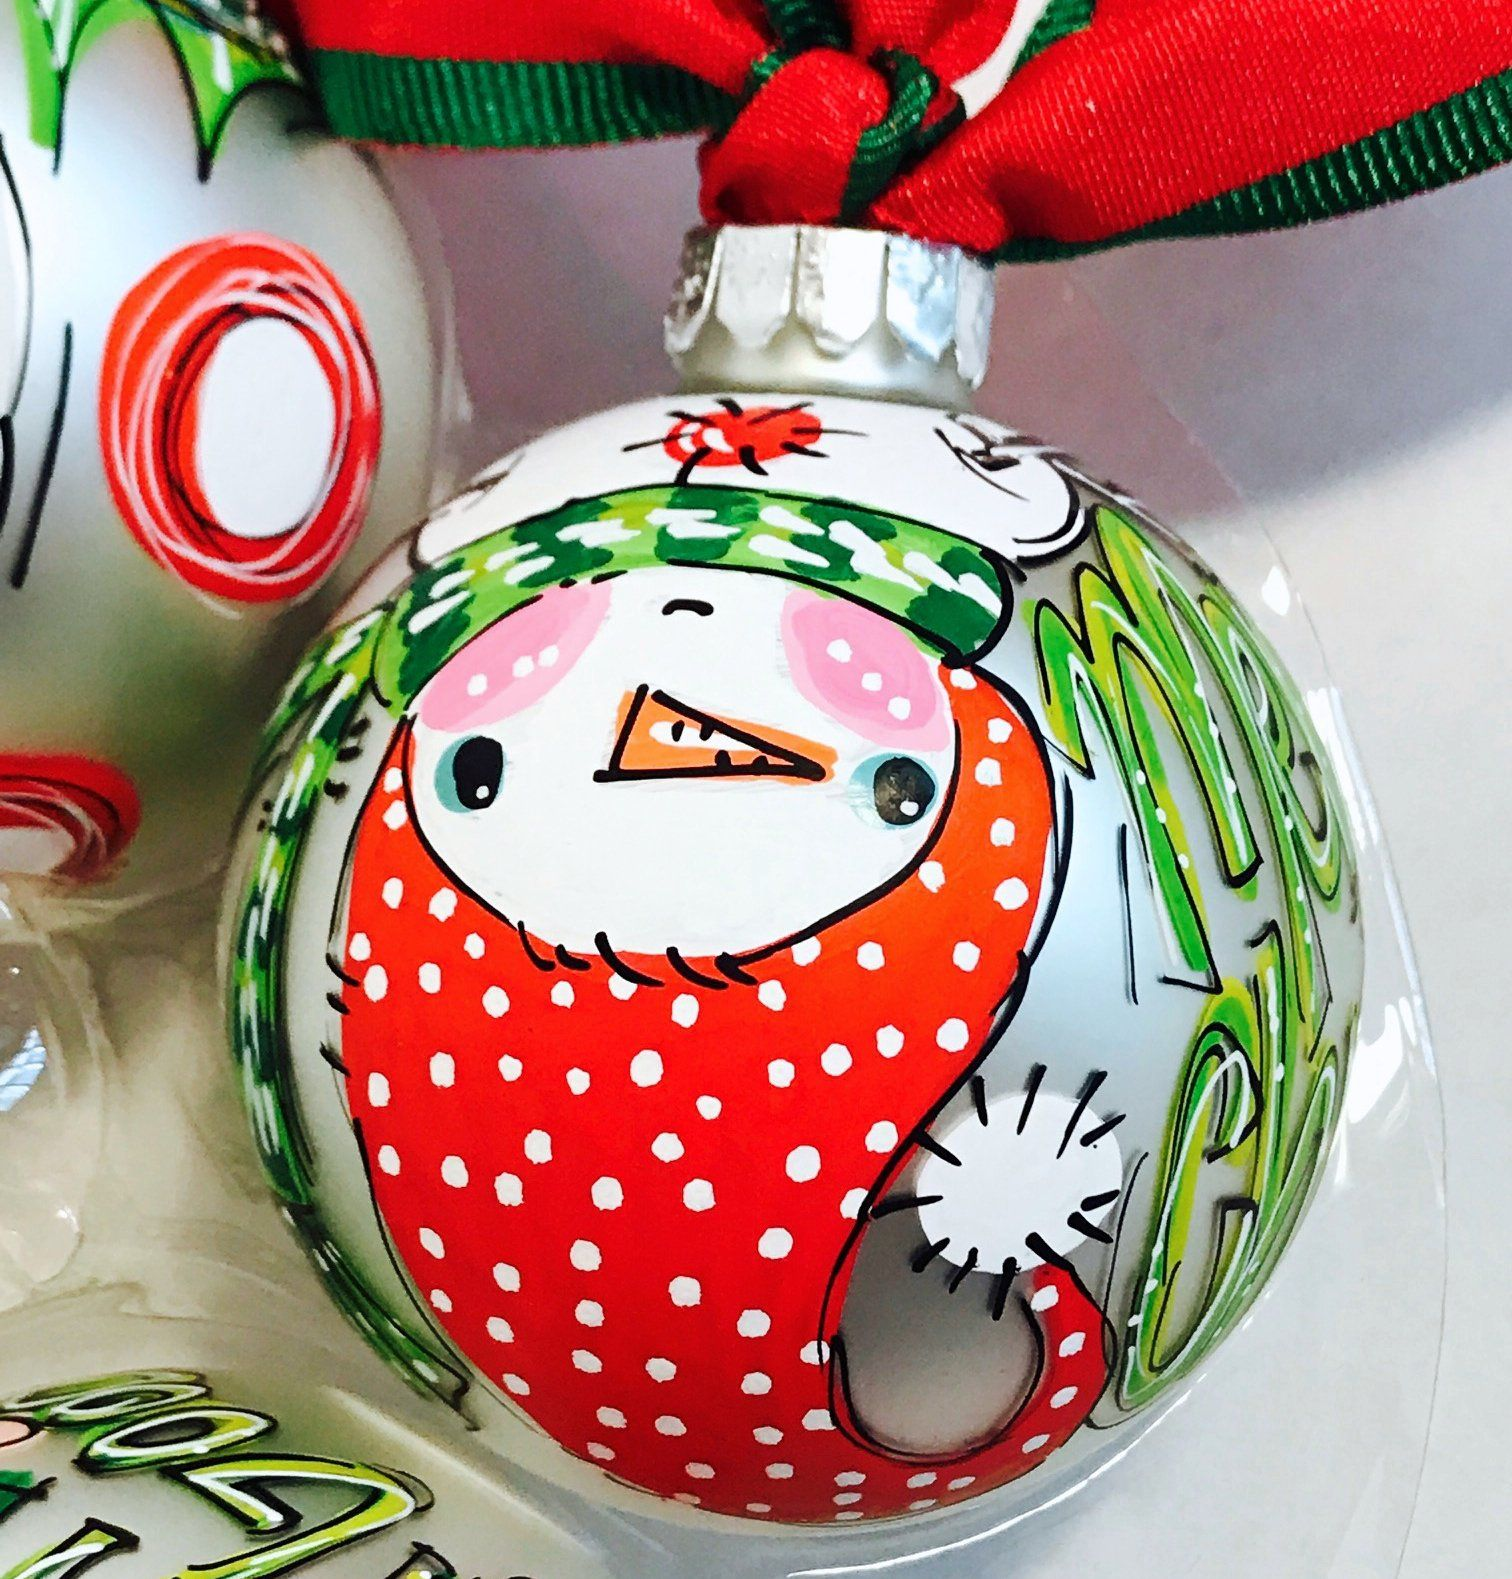 ORNAMENT, PERSONALIZED UPSIDE DOWN SNOWMAN Ornament (With